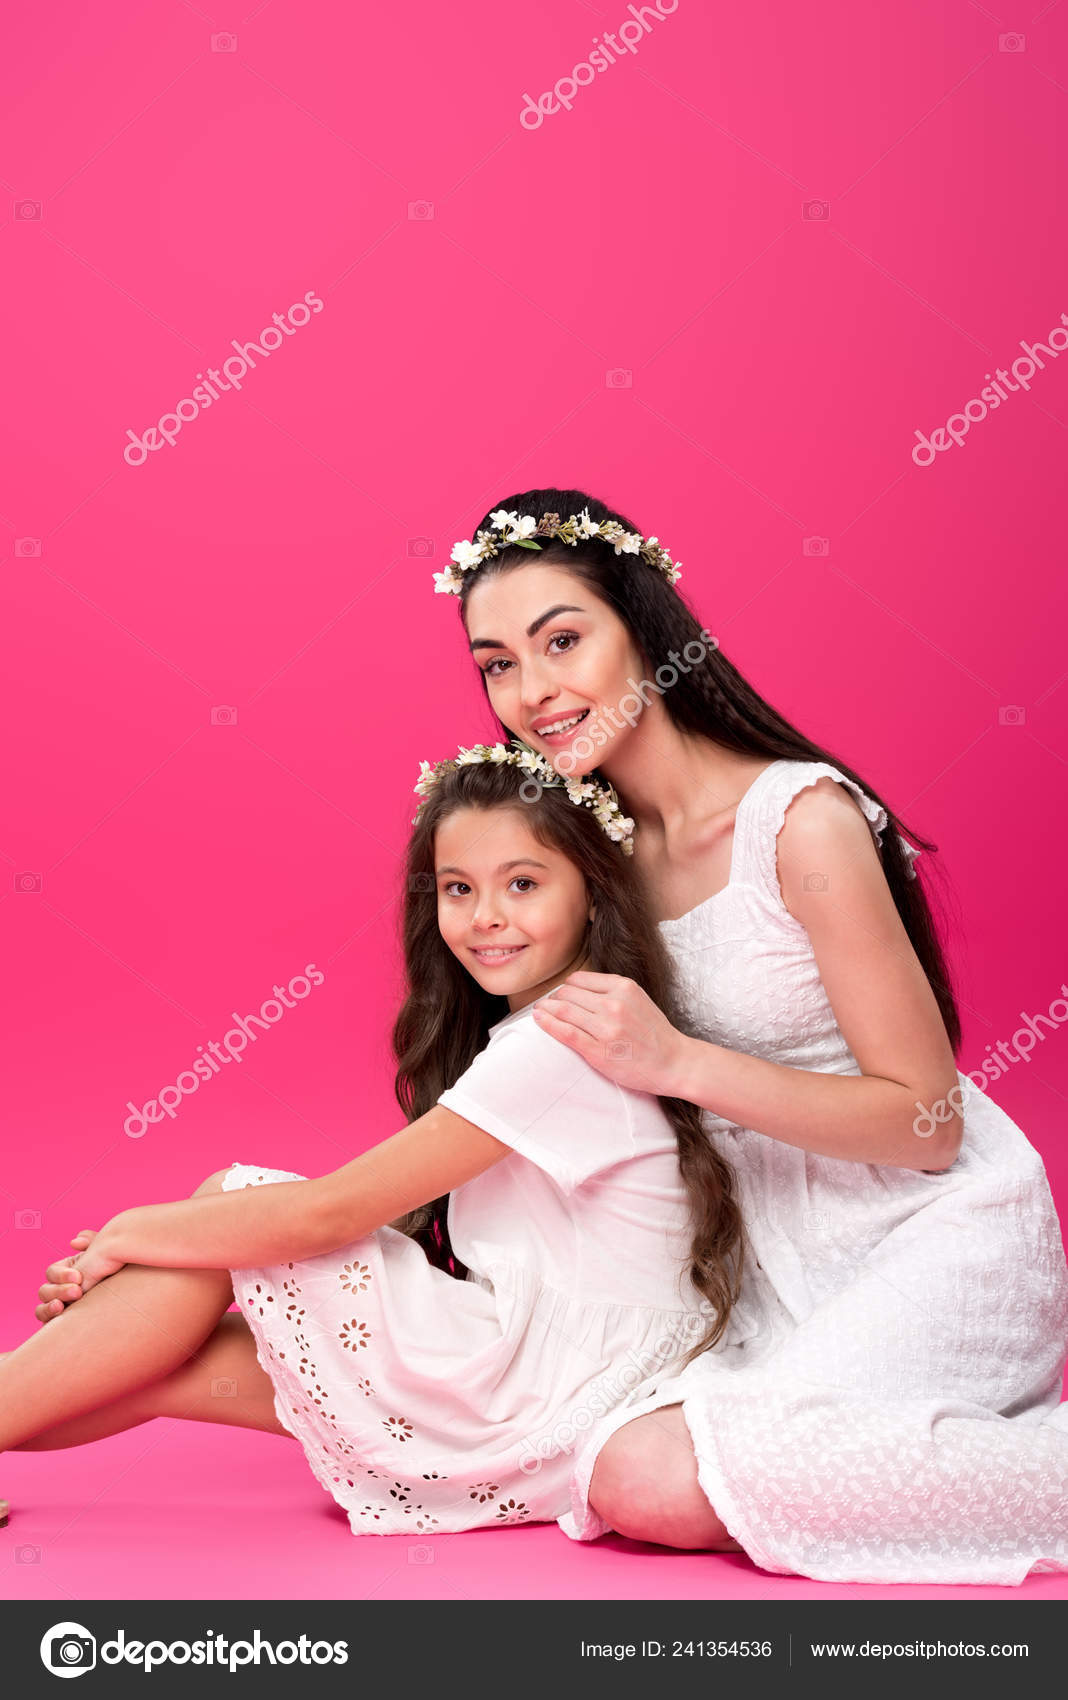 dcdb90c1bb Beautiful happy mother and daughter in white dresses sitting together and  smiling at camera on pink– stock image